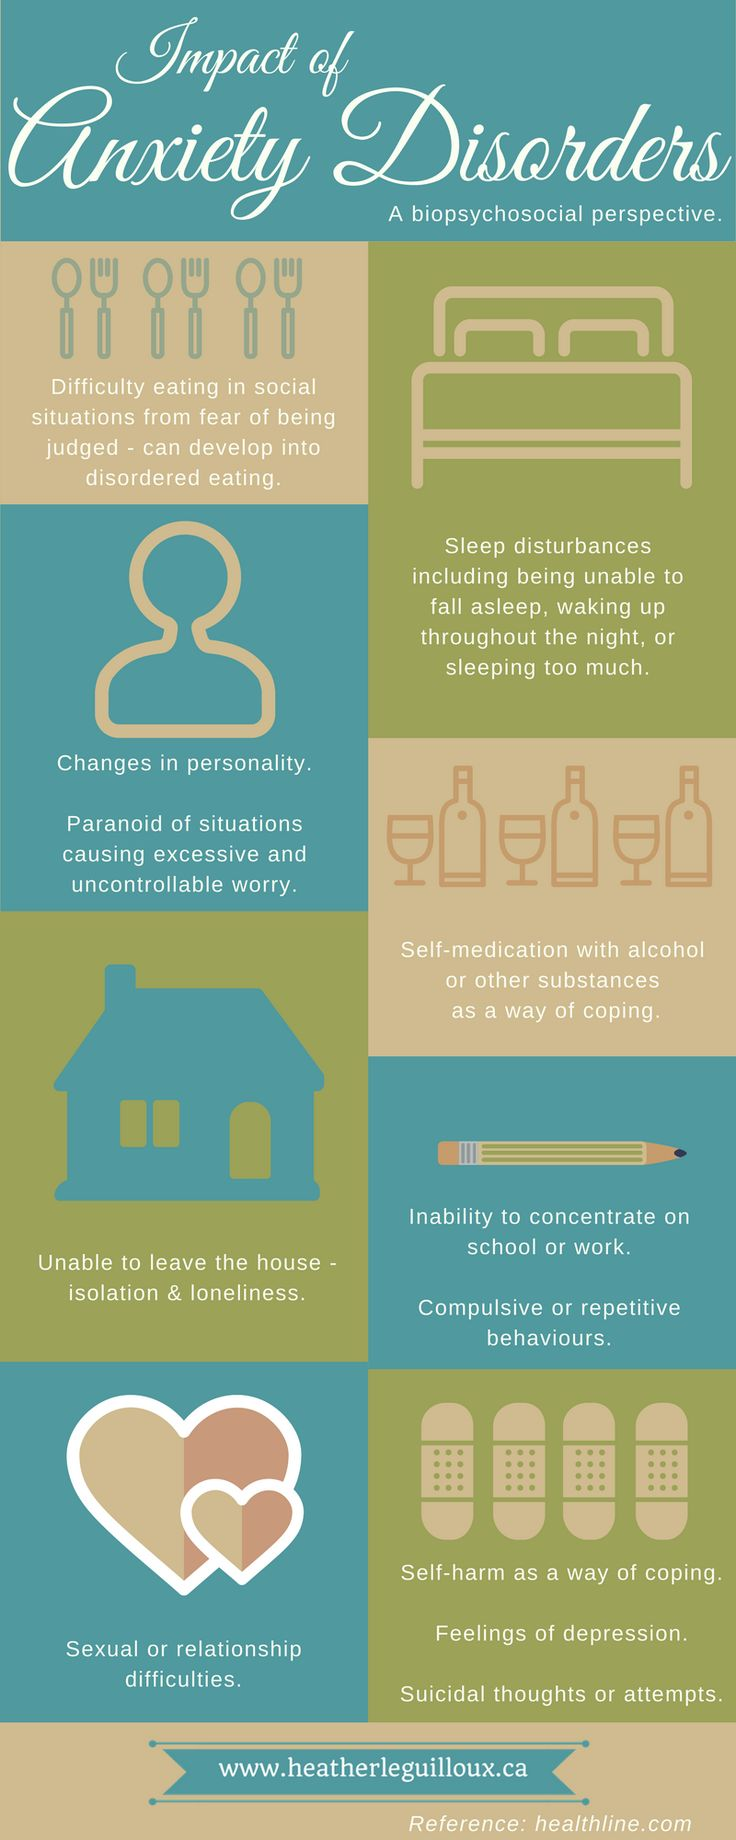 Infographic visually displaying some of the impacts of anxiety disorders - 3rd blog post in series on anxiety @hleguilloux   mental health   anxiety   impacts